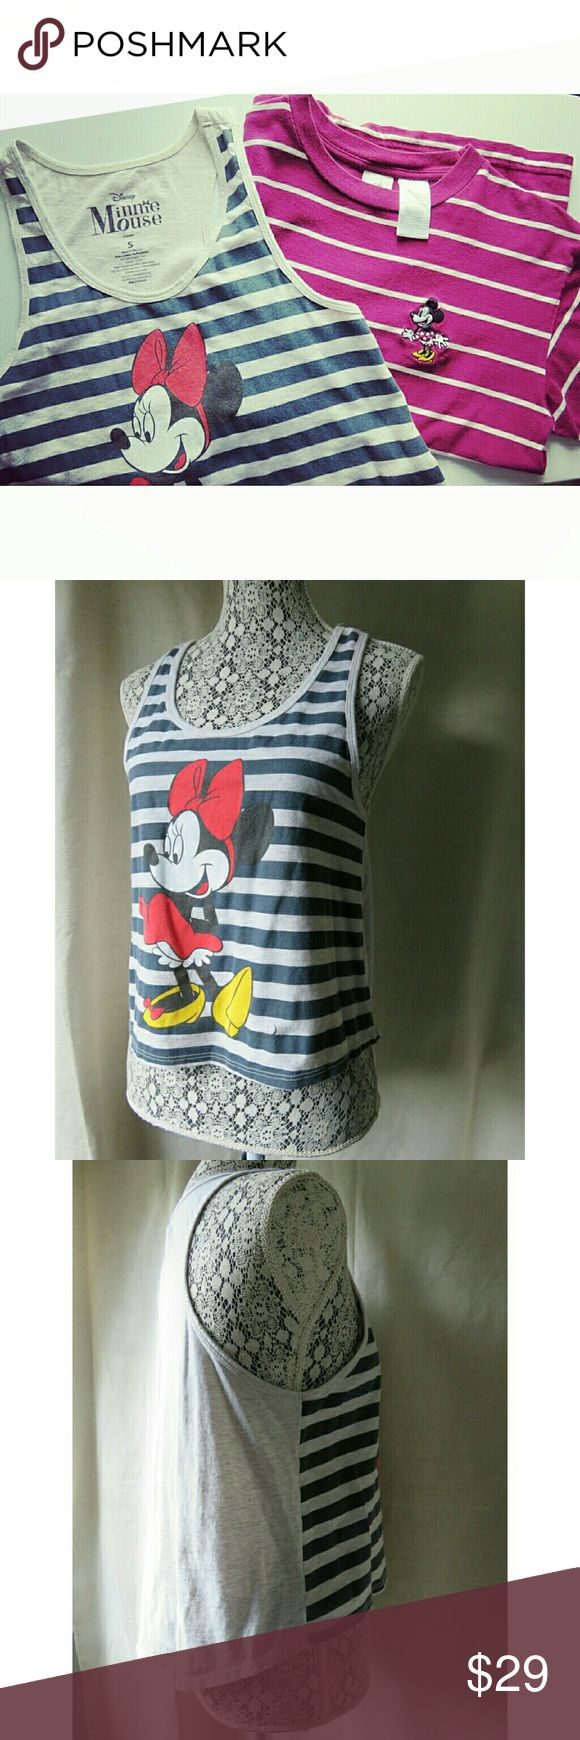 Disney Minnie Mouse Tops Bundle Tank/ T-shirt Sm Top A is a racer back tank top, size Ladies Small, navy & gray stripe pattern on front with Minnie Mouse. Back has rounded/ longer shirt tail. Cotton blend, so soft! Top B is a t-shirt in fuchsia purple & white stripe pattern. Some pilling. No stains on either. Both authentic Disney brand! (1st photo filtered.) Sold as bundle set of 2. Thanks so much --Jen  #726 Disney Tops